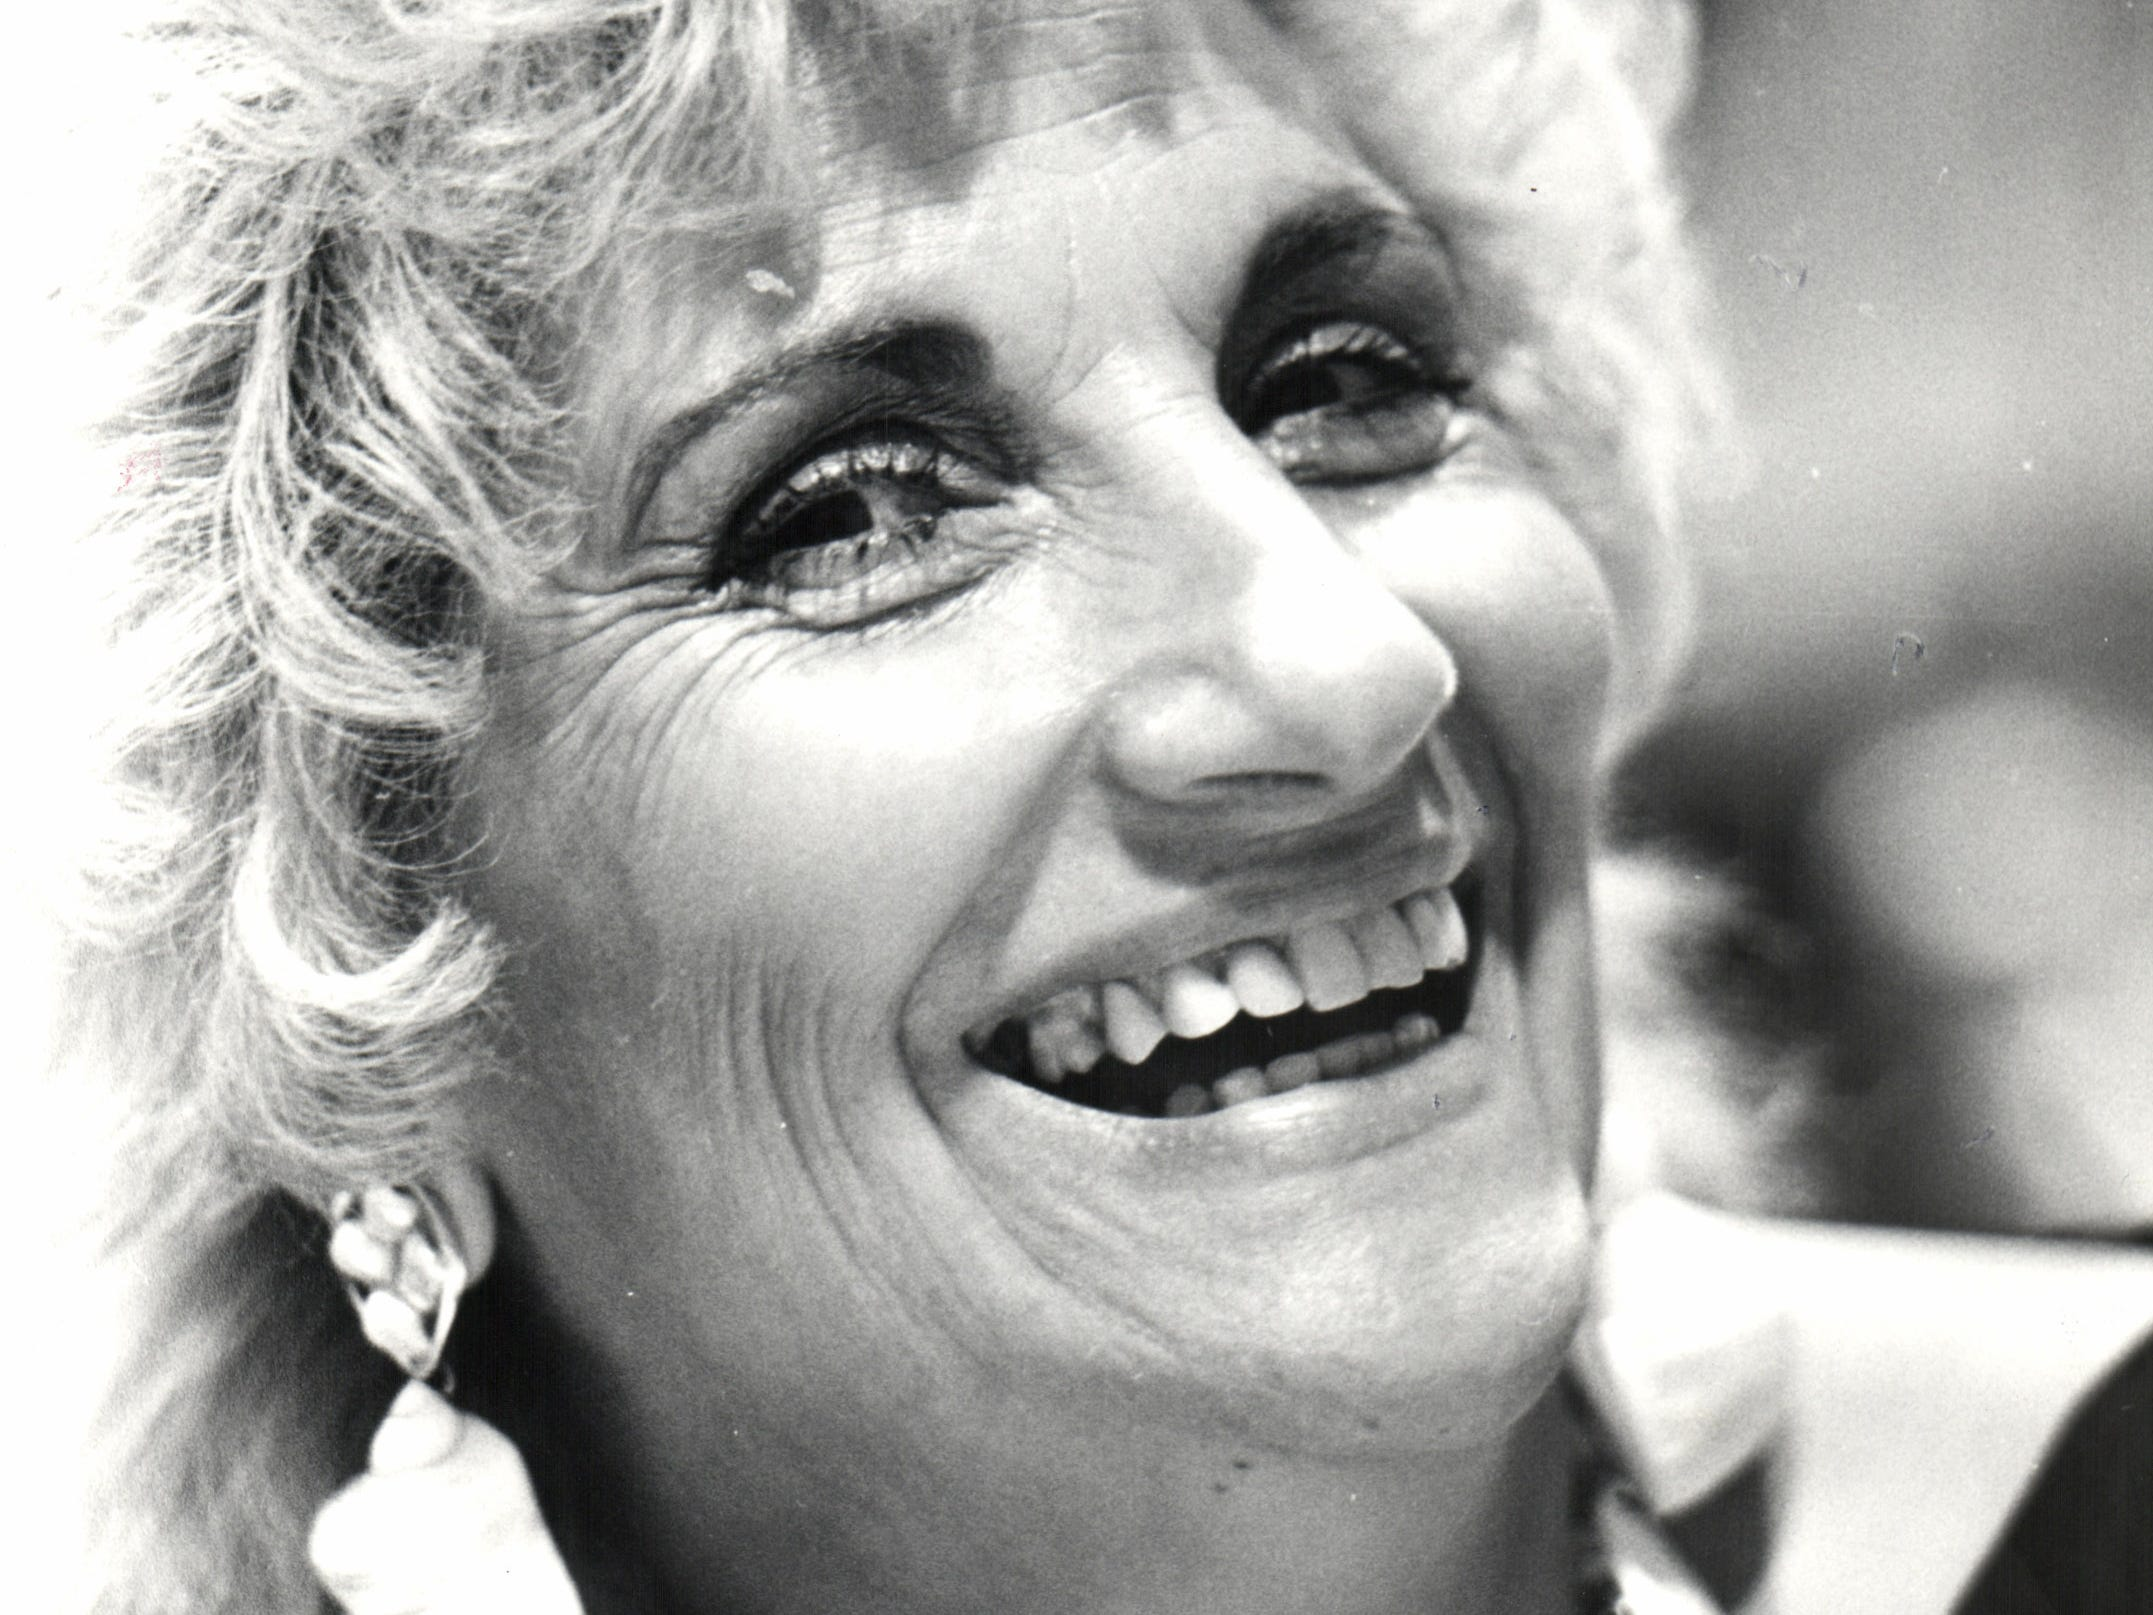 Olga Loizon, restaurateur and founder of Olga's Kitchen, photographed in 1985.